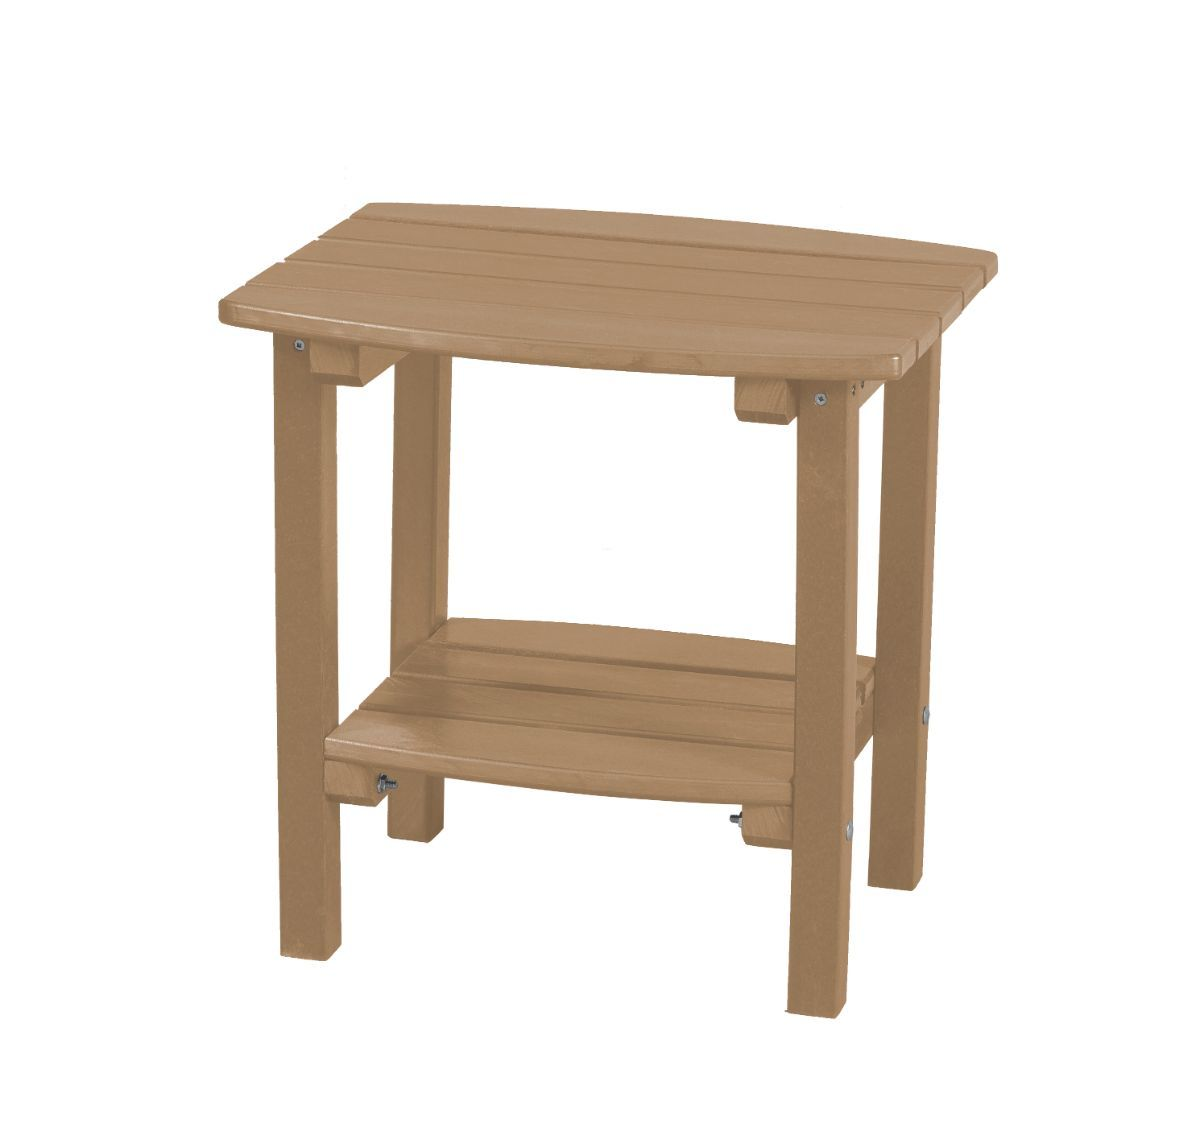 Weathered Wood Odessa Small Outdoor Side Table